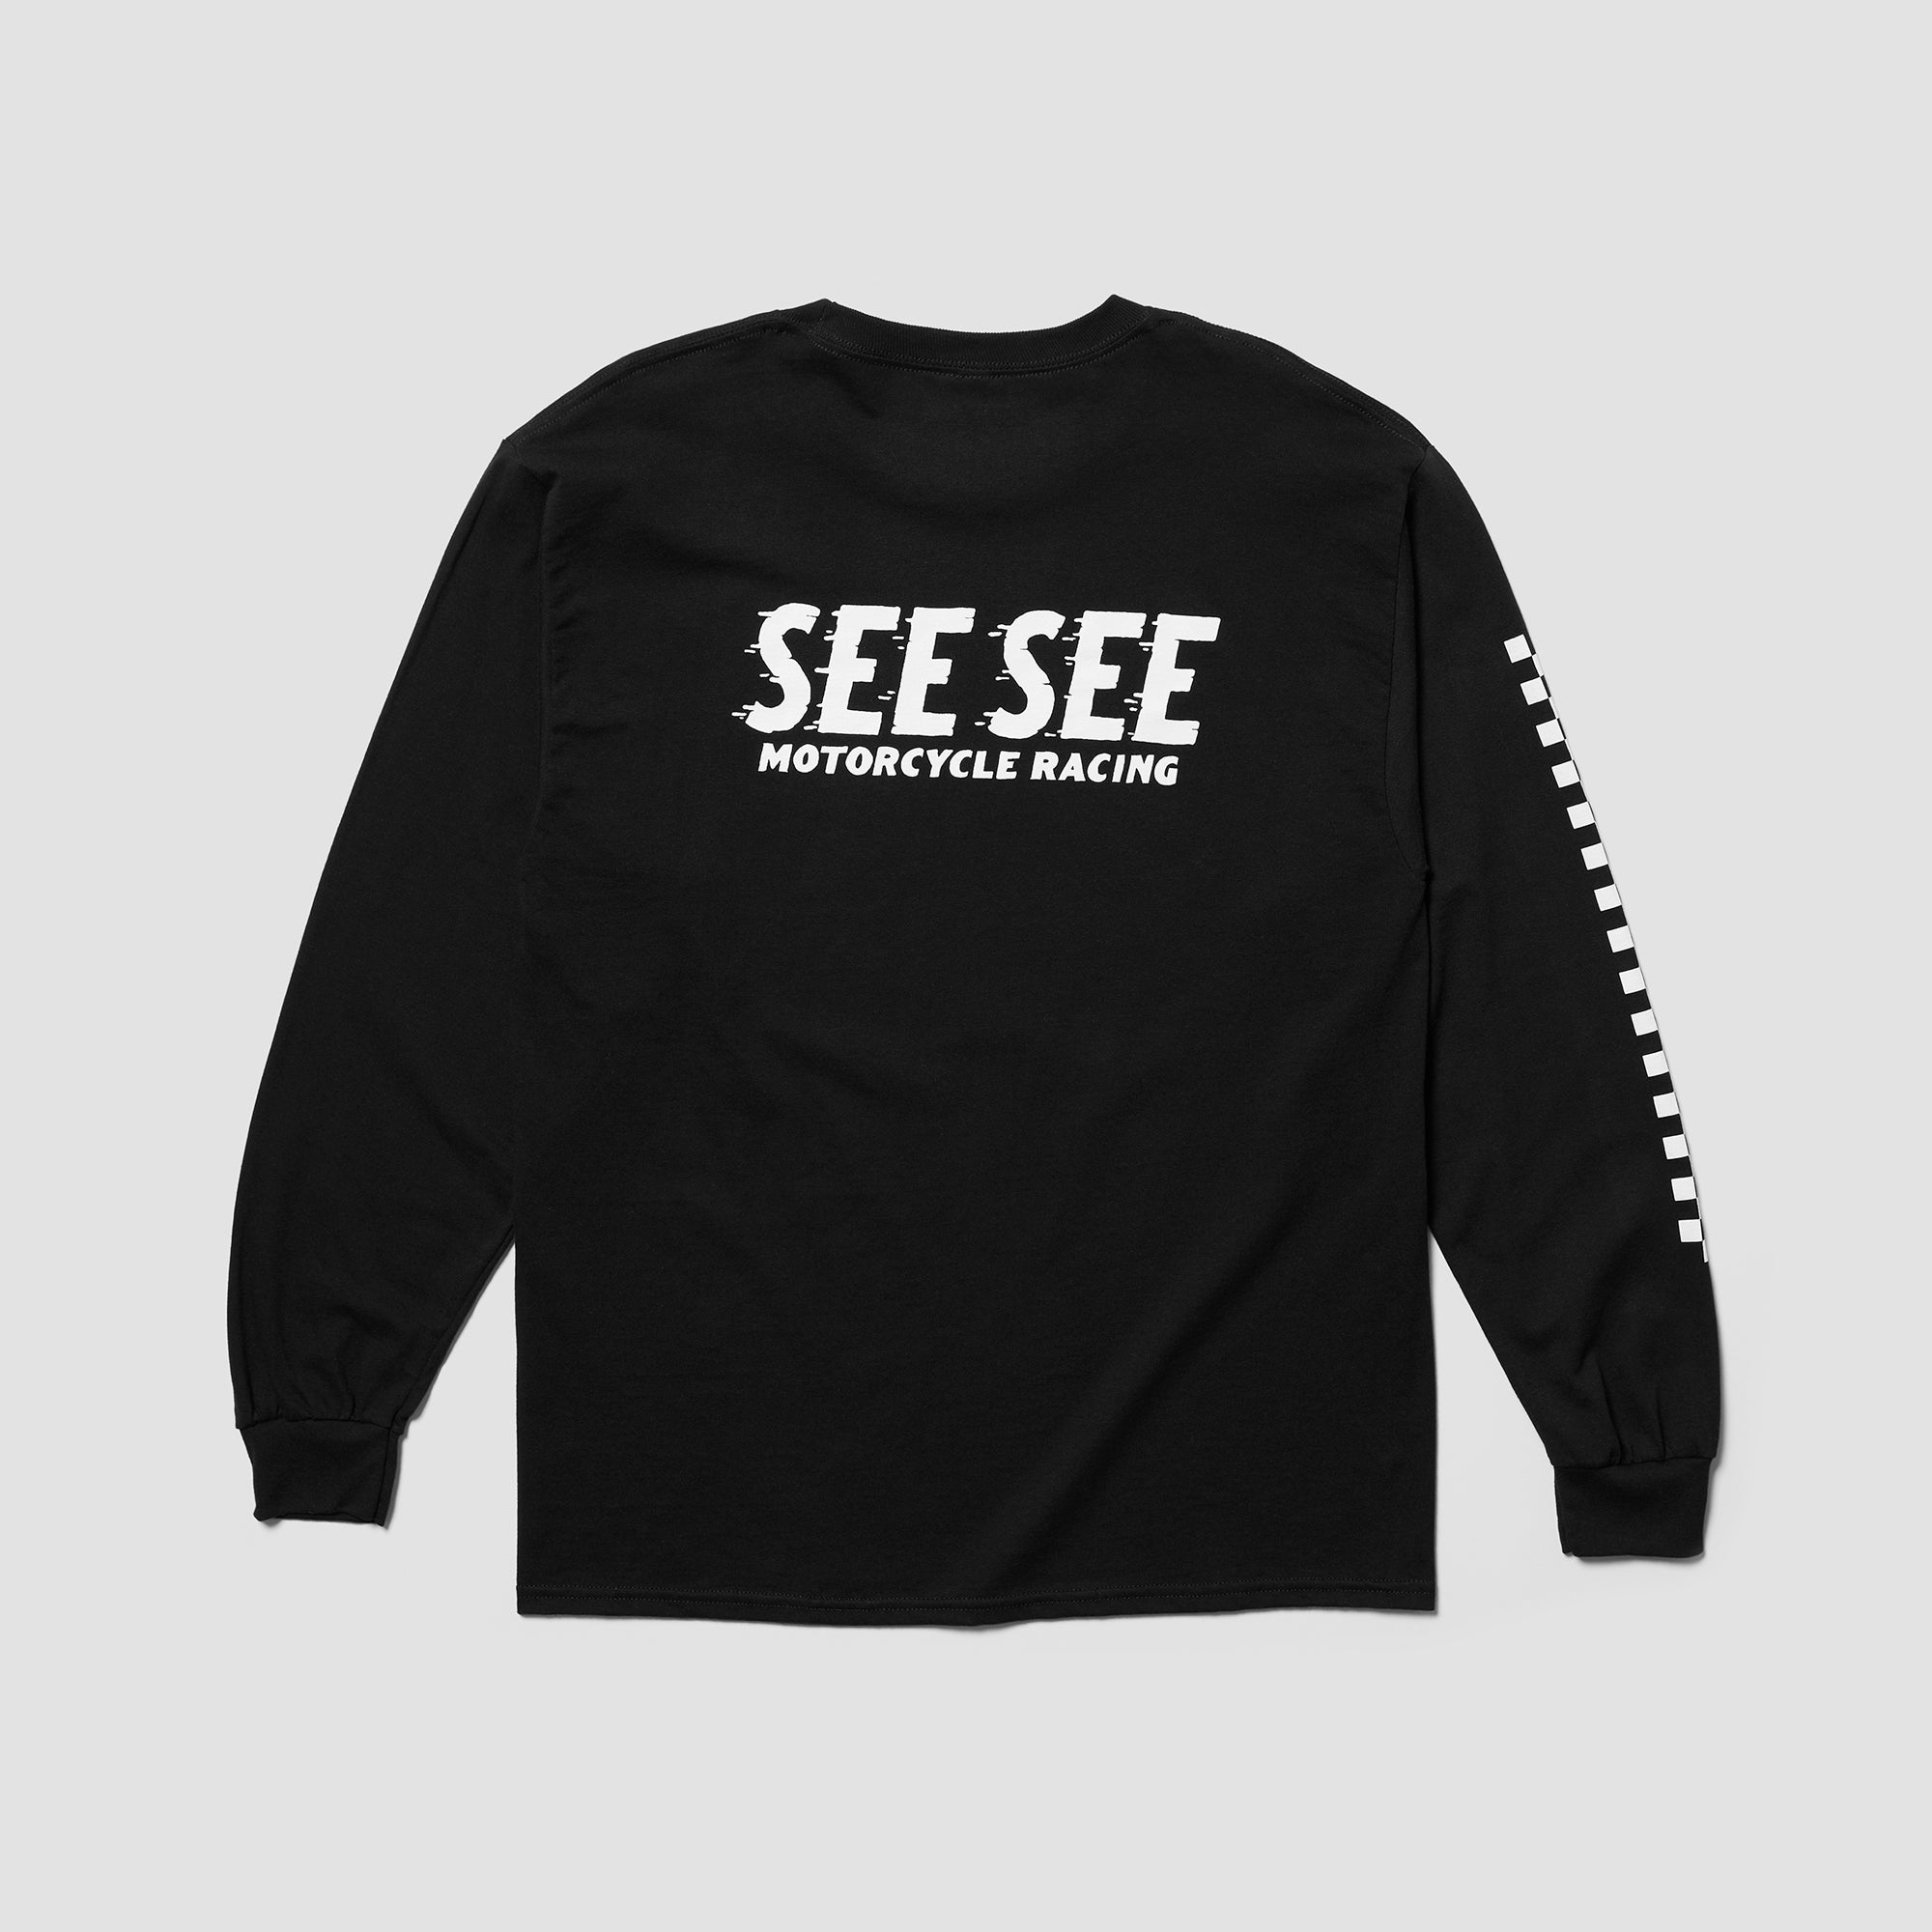 Go Faster Long Sleeve - Black